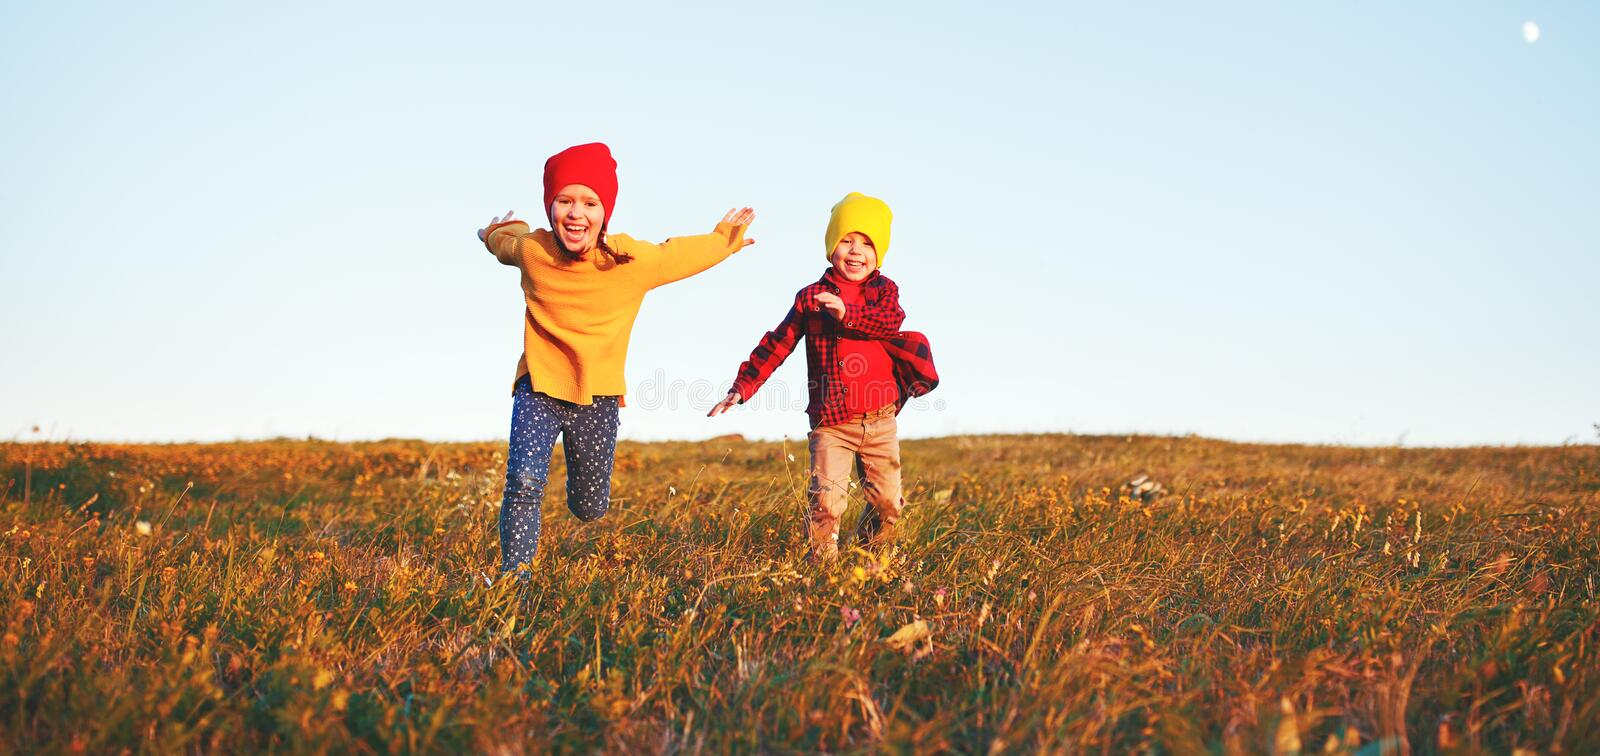 Happy kids   boy and girl running and laughing on autumn nature walk royalty free stock photo